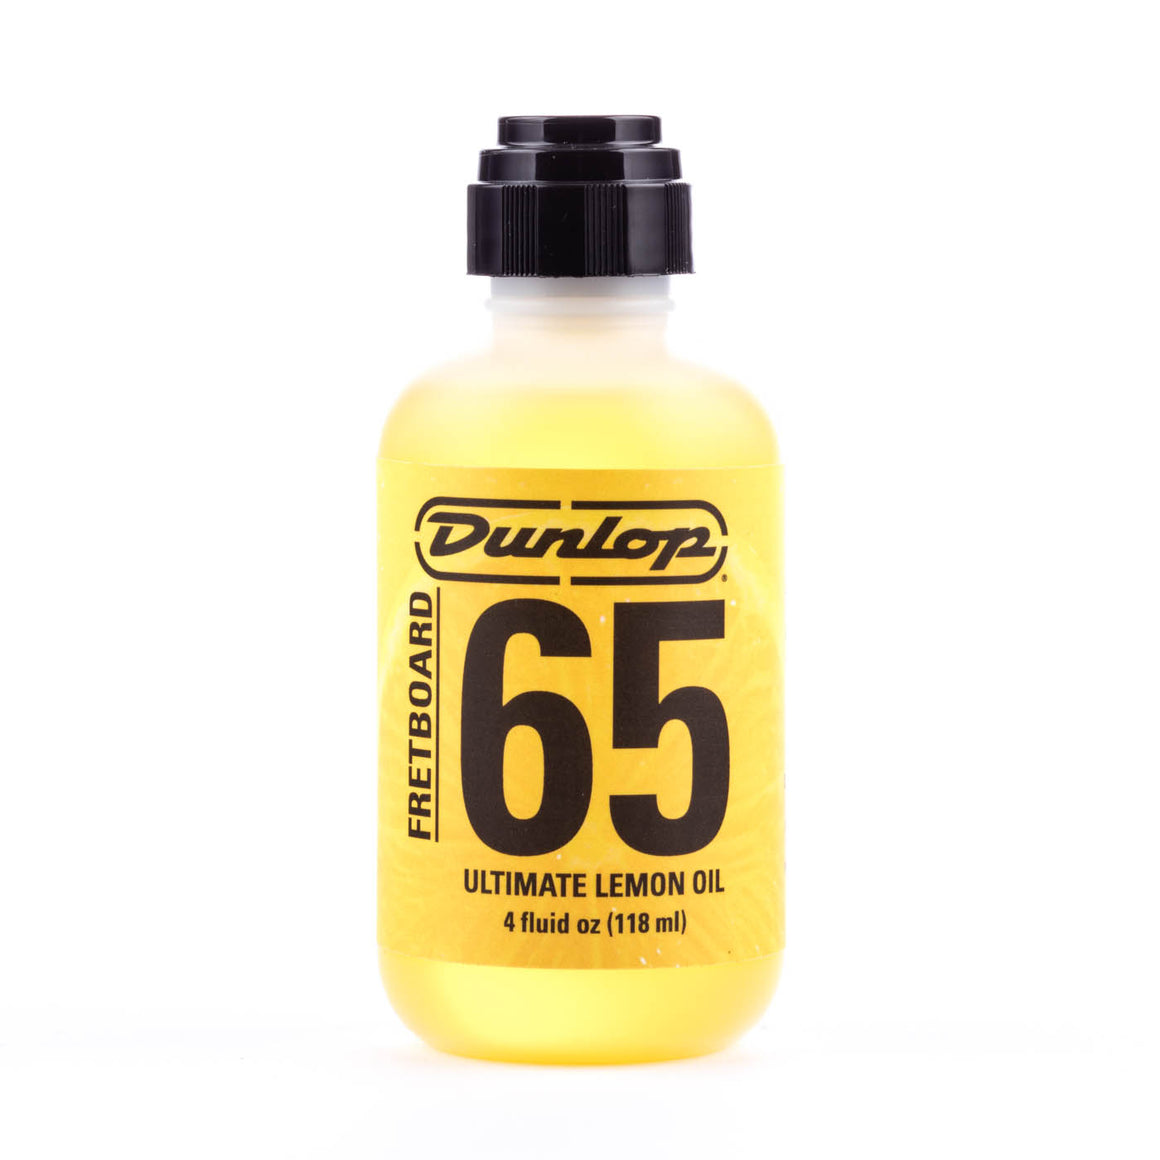 Dunlop 6554 Lemon Oil 4 oz